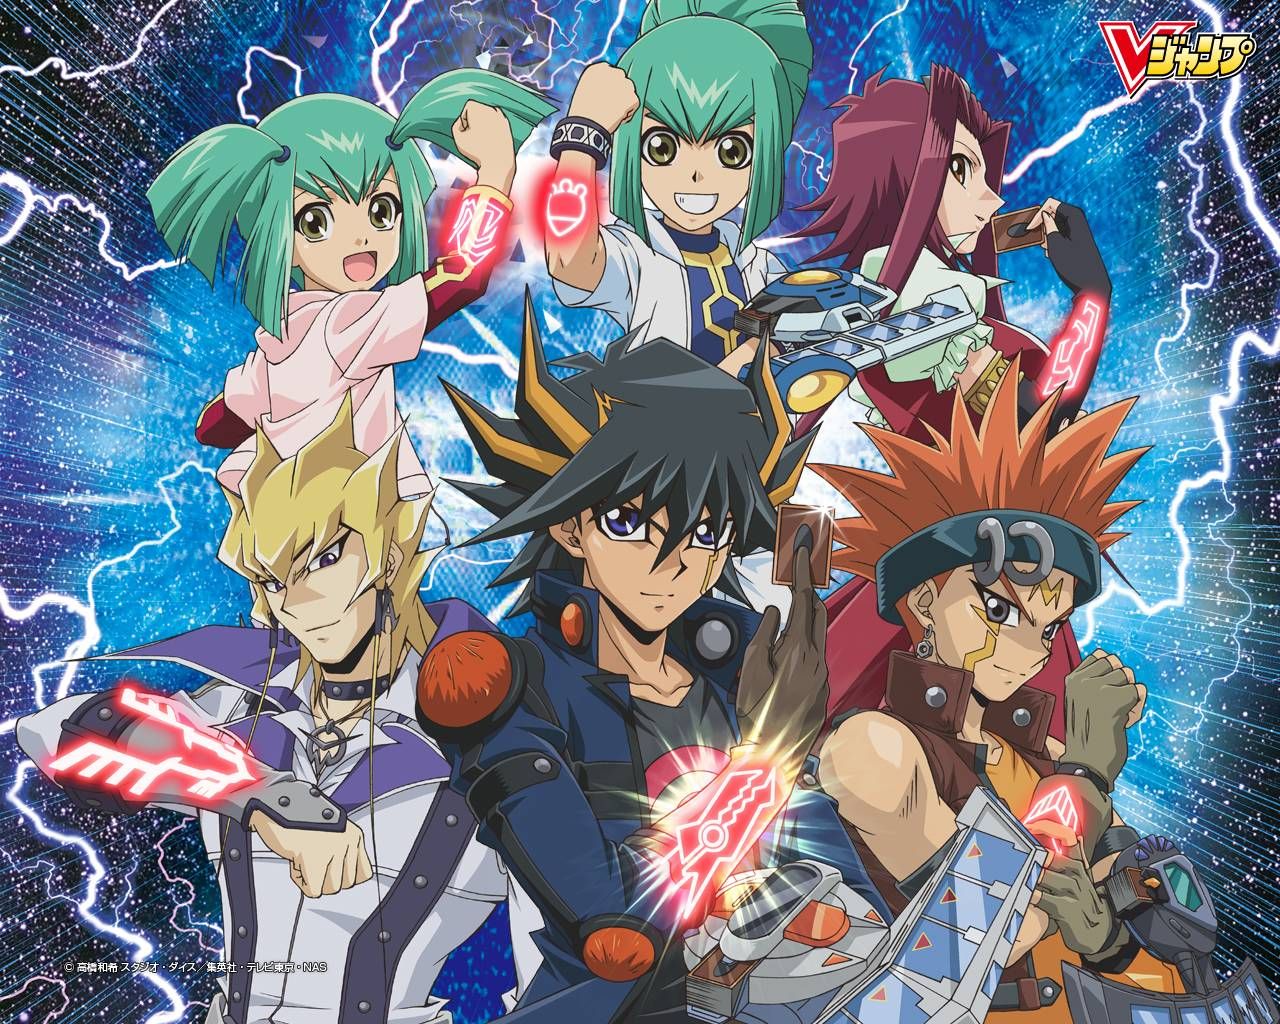 Ver Yu-Gi-Oh! 5Ds Online